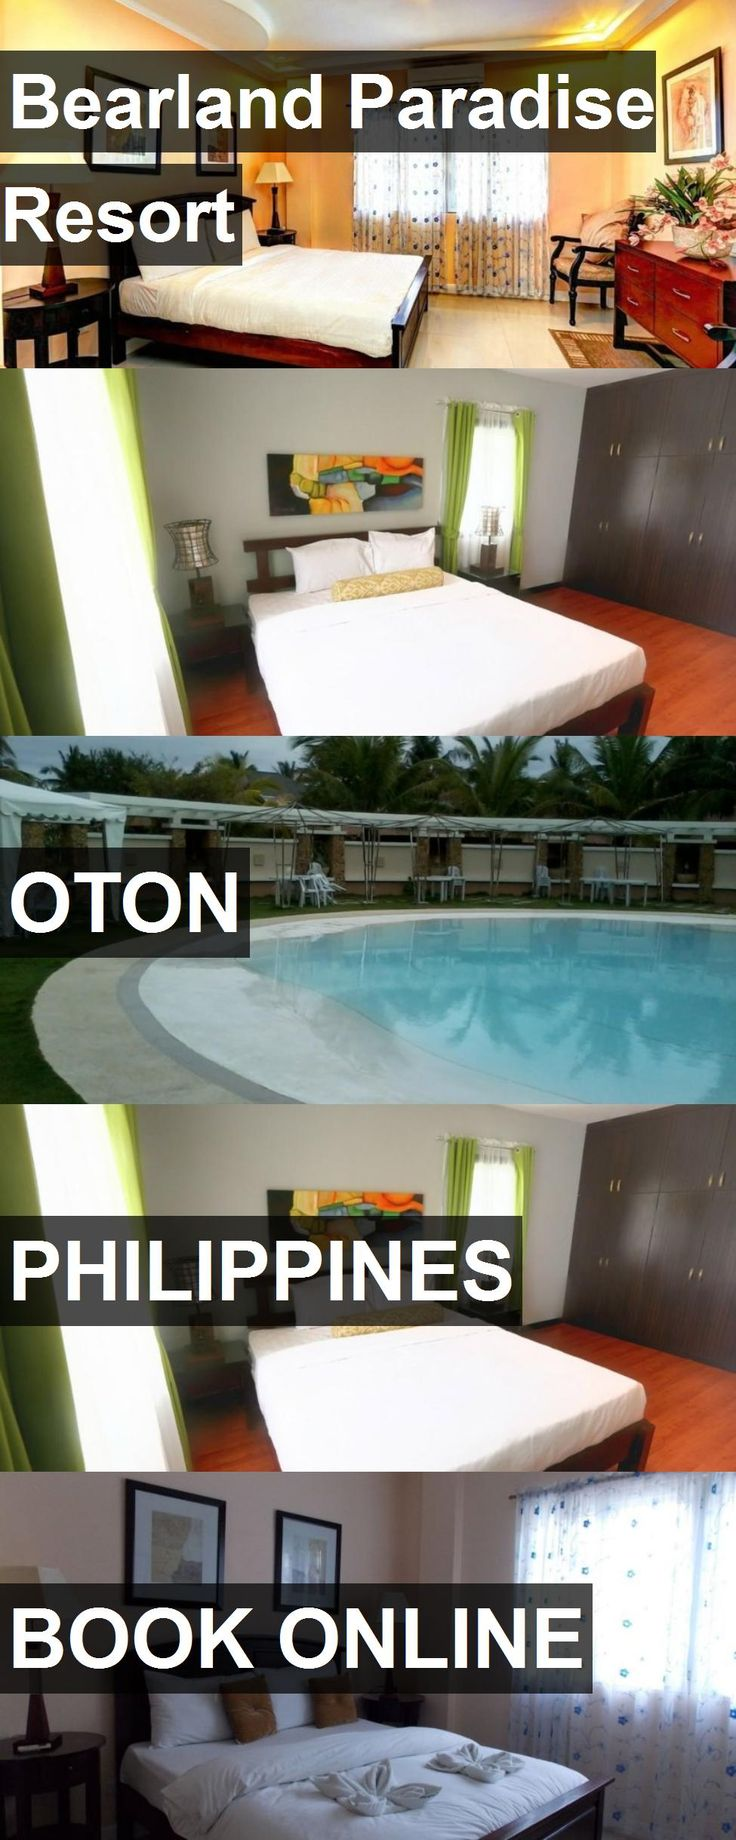 Hotel Bearland Paradise Resort in Oton, Philippines. For more information, photos, reviews and best prices please follow the link. #Philippines #Oton #BearlandParadiseResort #hotel #travel #vacation